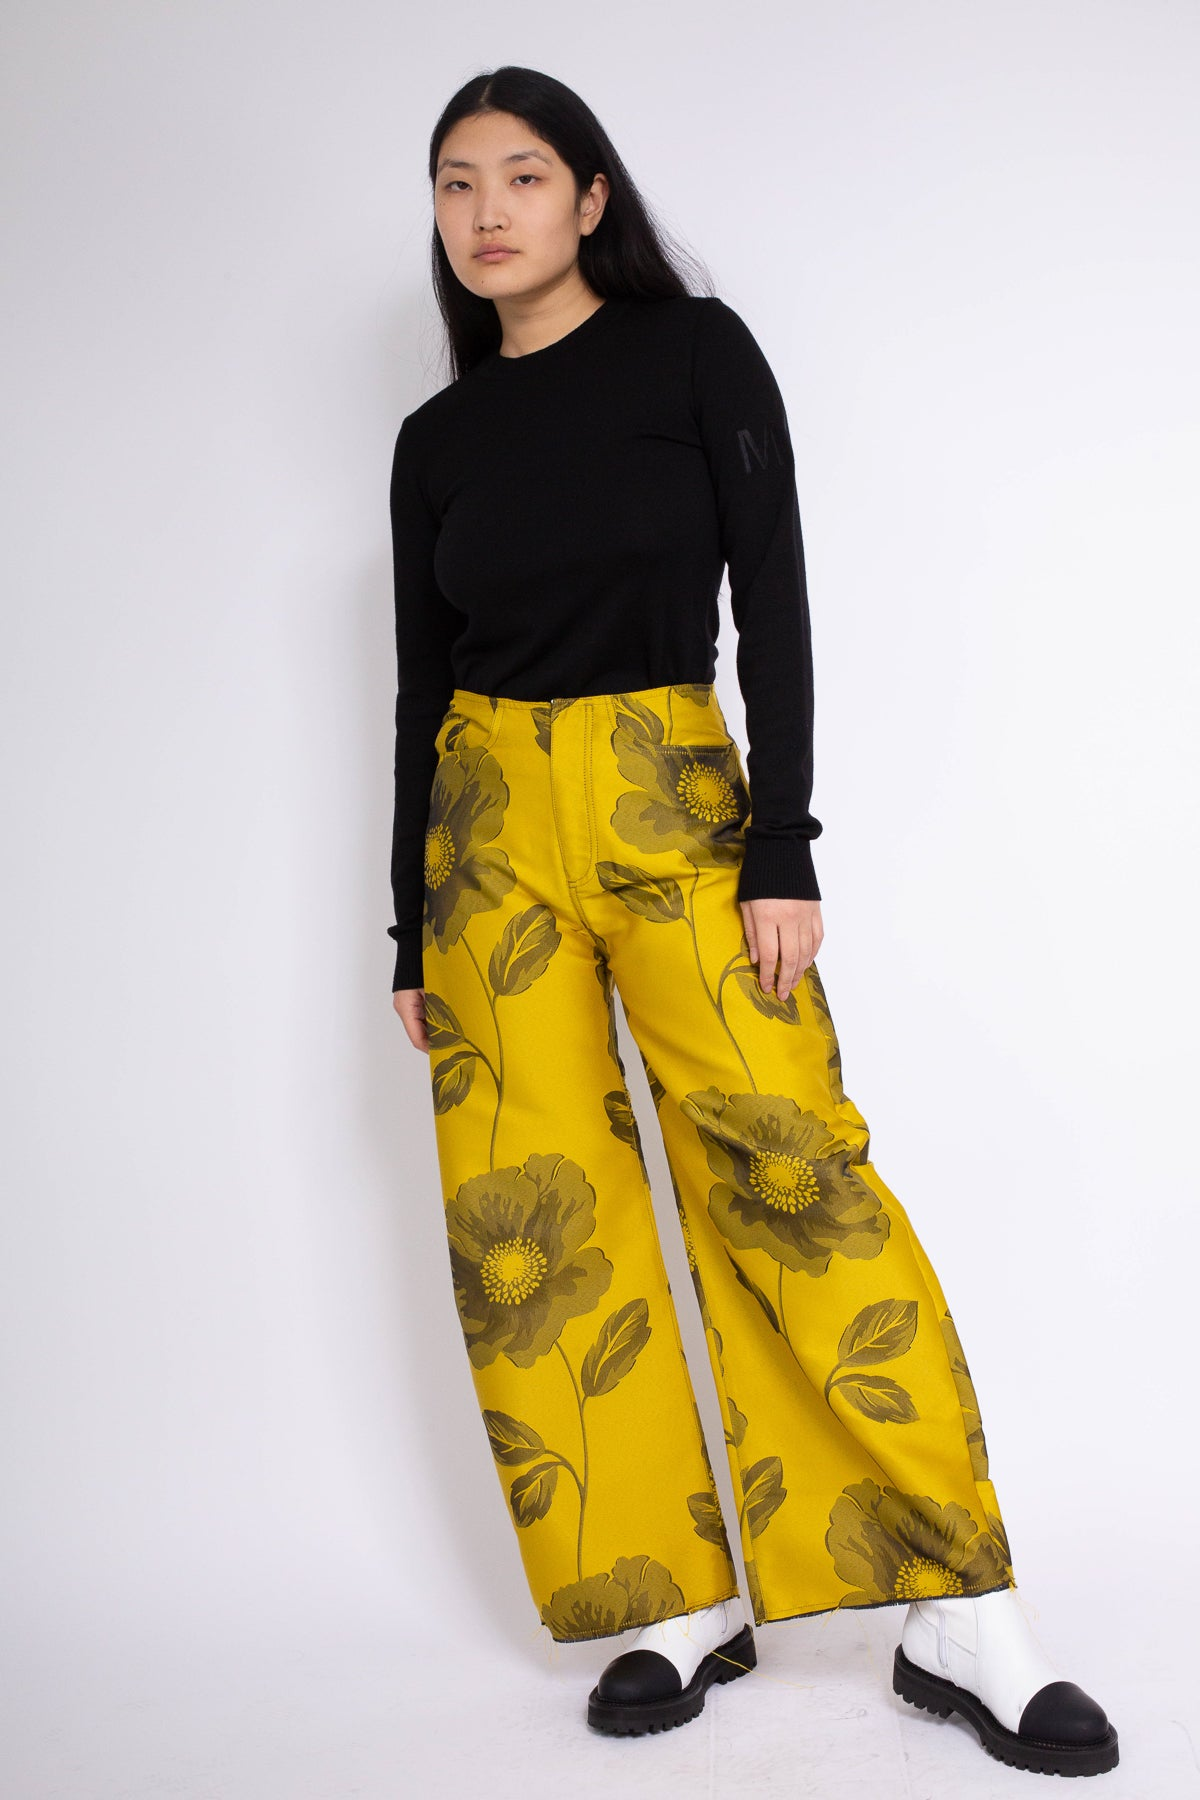 PRE-OWNED / BOYFRIEND STYLE TROUSERS IN YELLOW FLOWER BROCADE - marques-almeida-dev